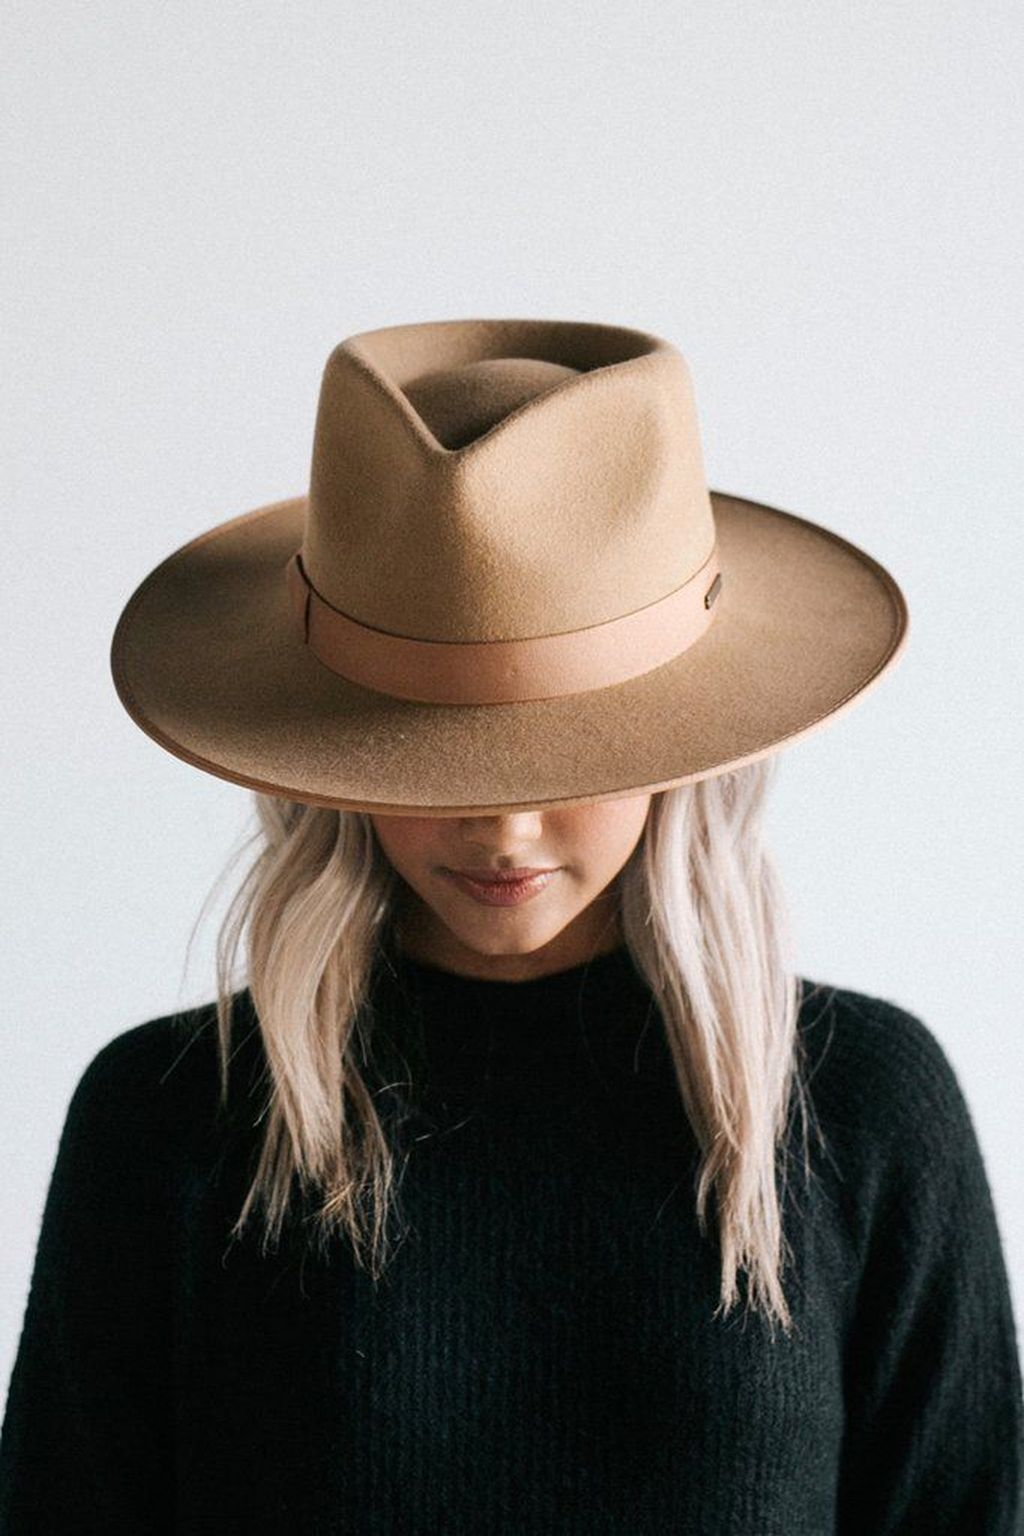 40 Fantastic Hats Styles Ideas For Fashion Obsessed Wear4trend Women Hats Fashion Felt Hat Outfit Outfits With Hats